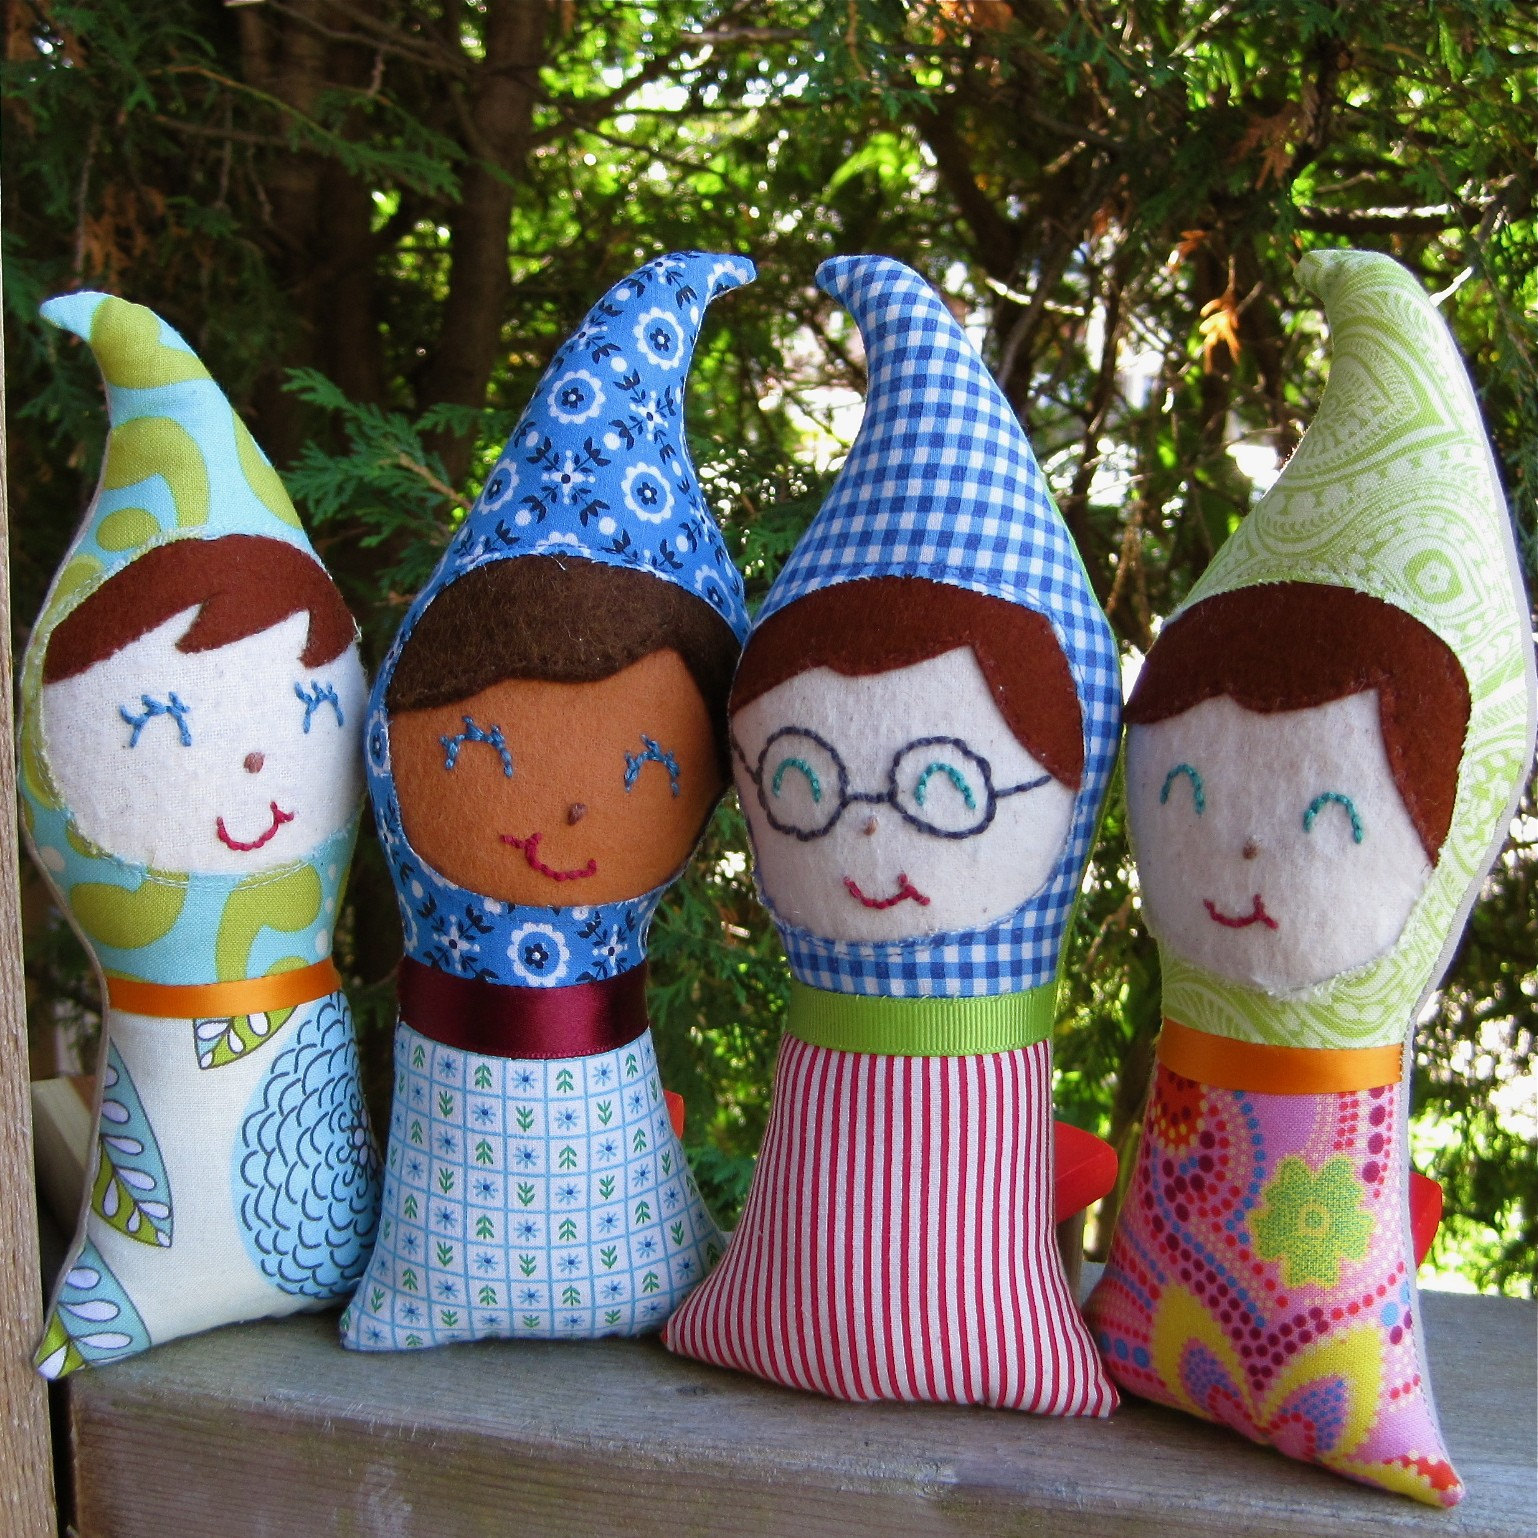 Baby Gnome: Gnome Baby Upcycled Dolls / Hand Embroidered Toys Stuffed